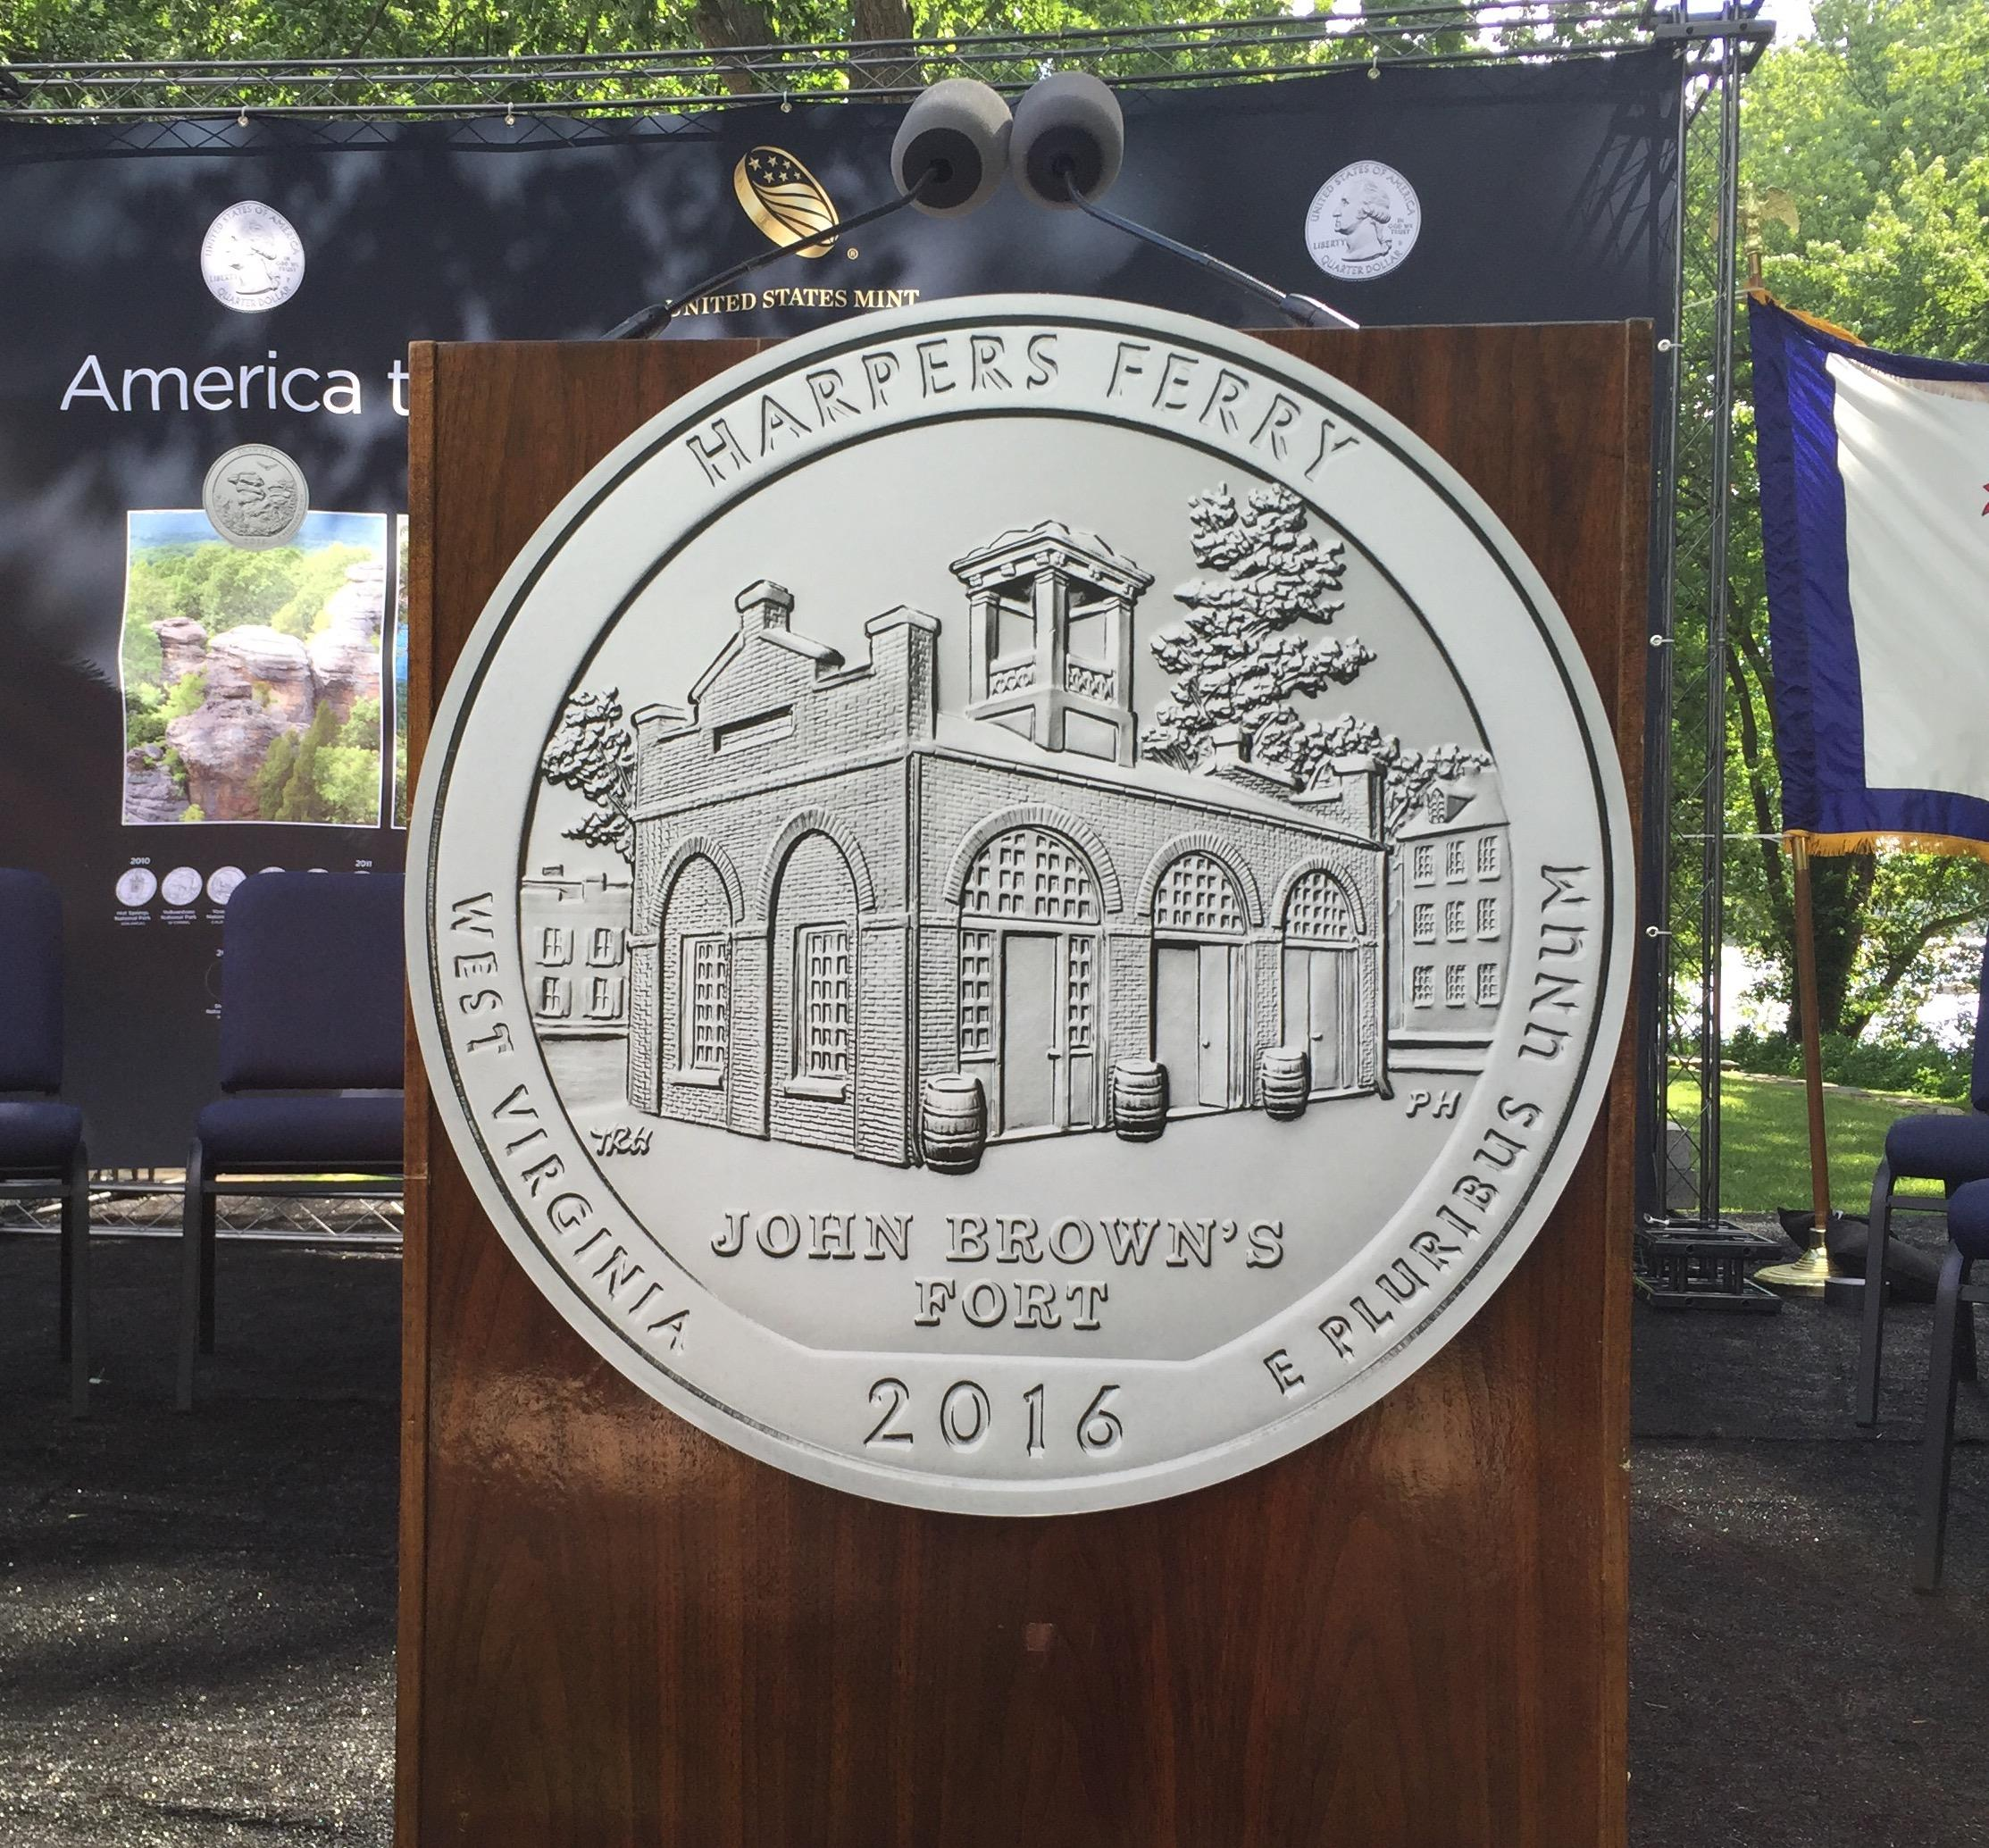 New Quarter Featuring John Brown's Fort Released in ...